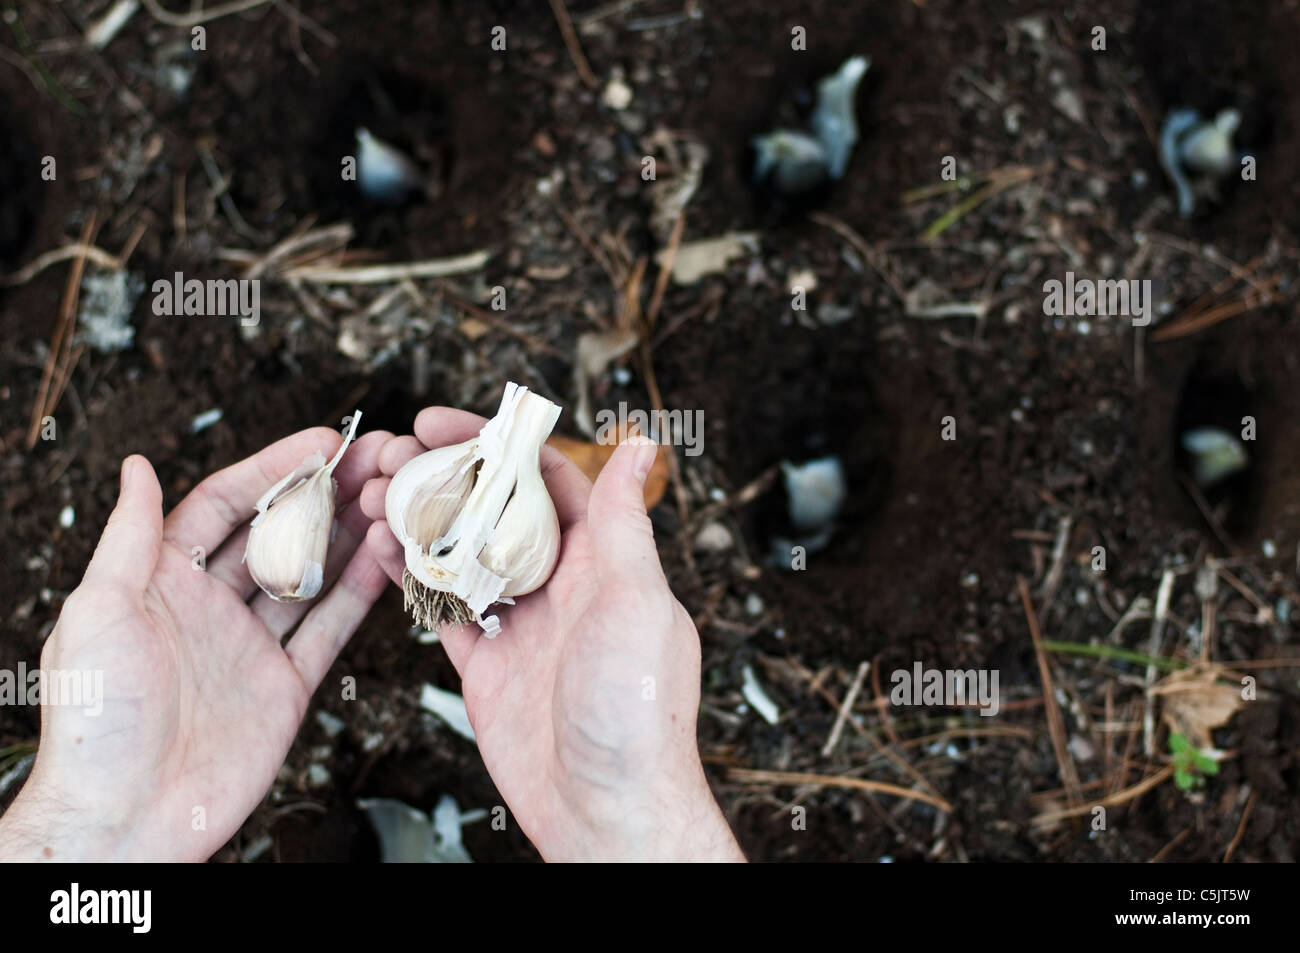 A gardener plants garlic in the fall. - Stock Image